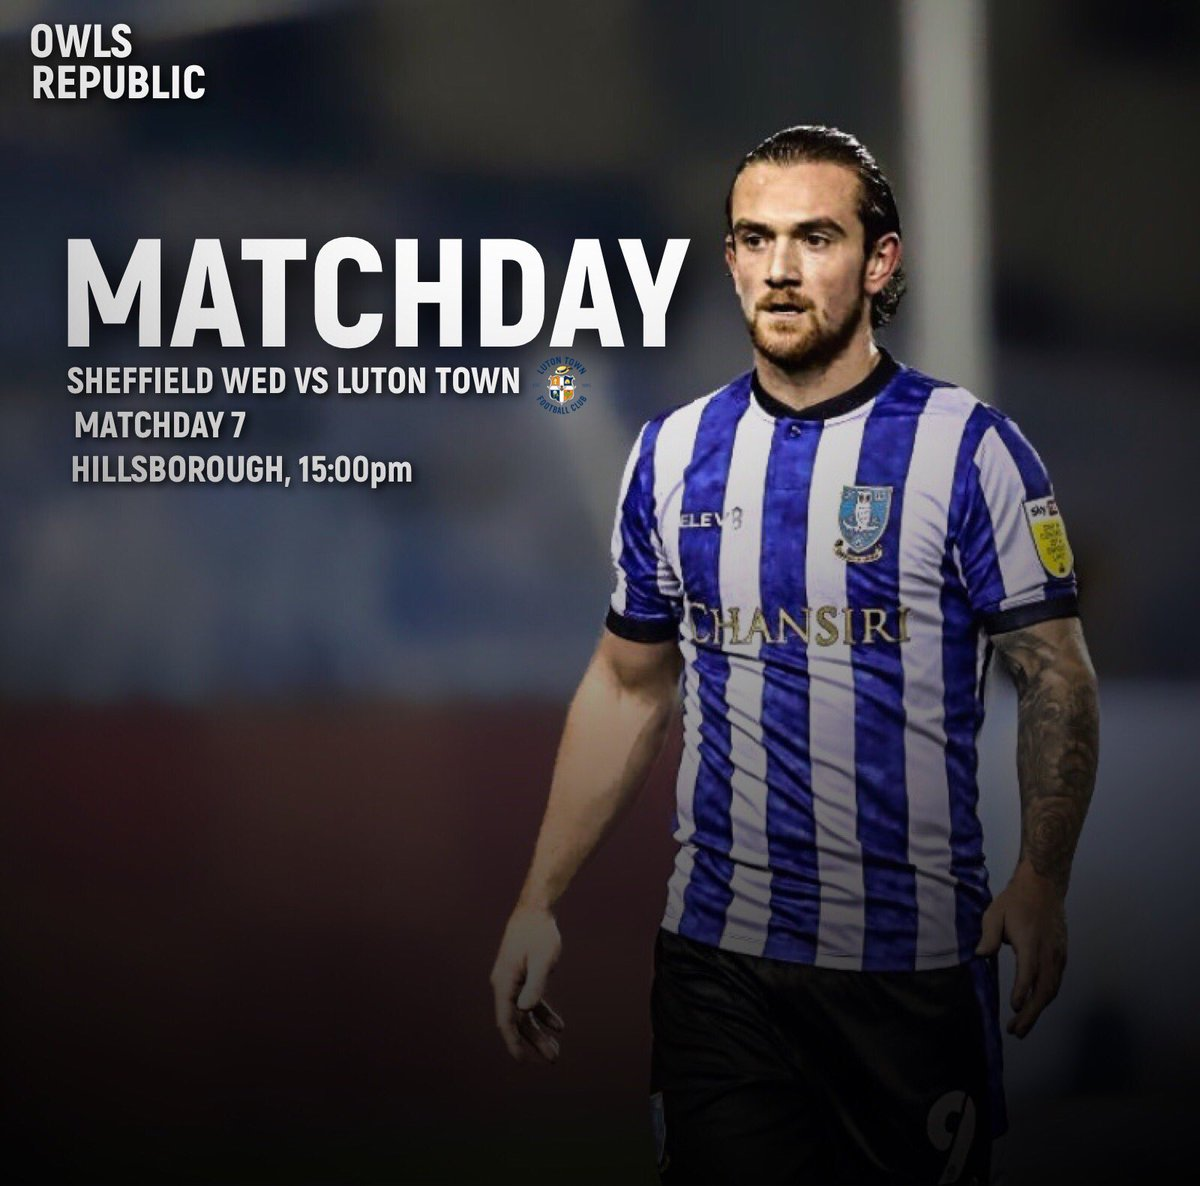 MATCHDAY| Nathan Jones' Luton Town at Hillsborough today, tough one, but come on Wednesday🦉 - #swfc #sheffieldwednesday https://t.co/sABQhUtl8b